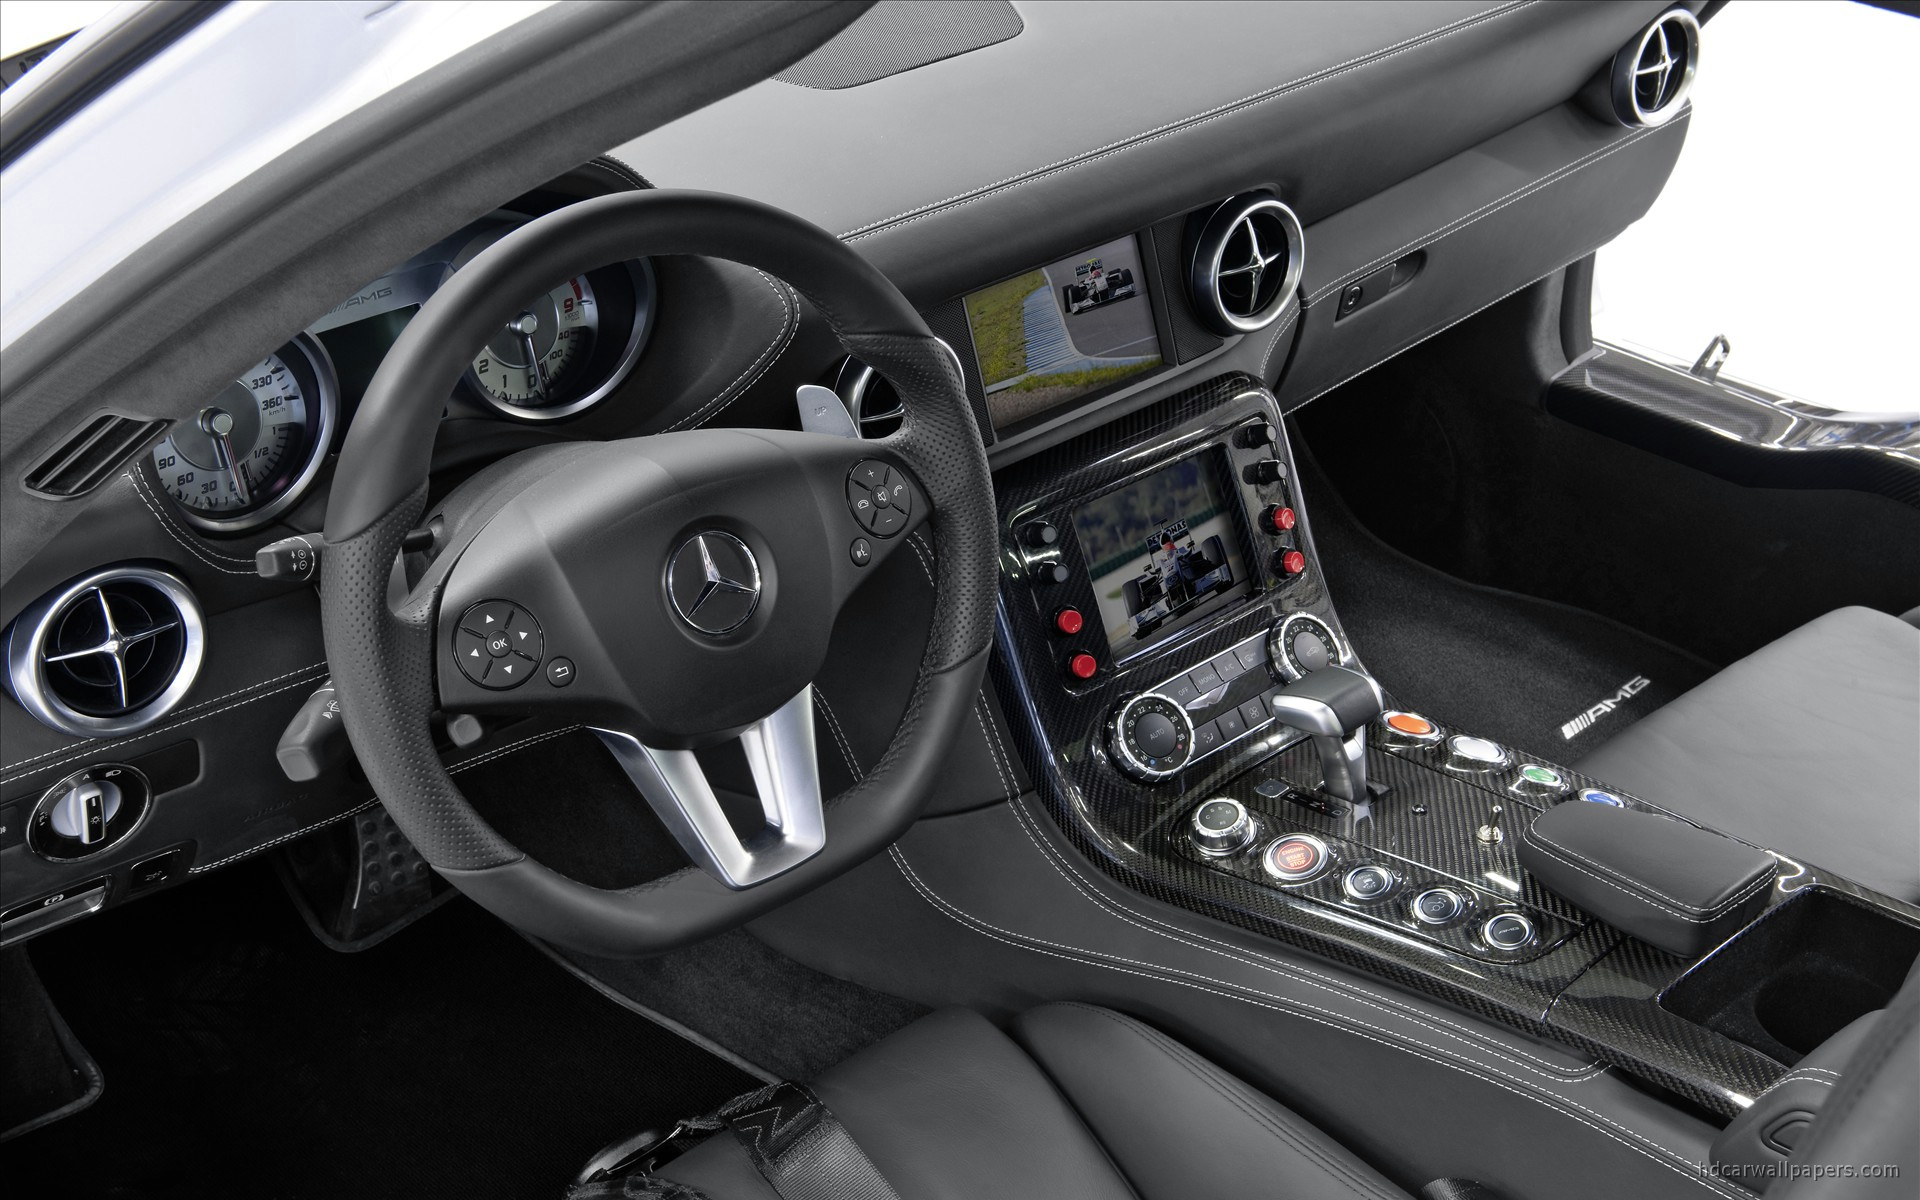 2010 mercedes benz sls amg f1 safety car interior wallpaper hd car wallpapers id 1207. Black Bedroom Furniture Sets. Home Design Ideas